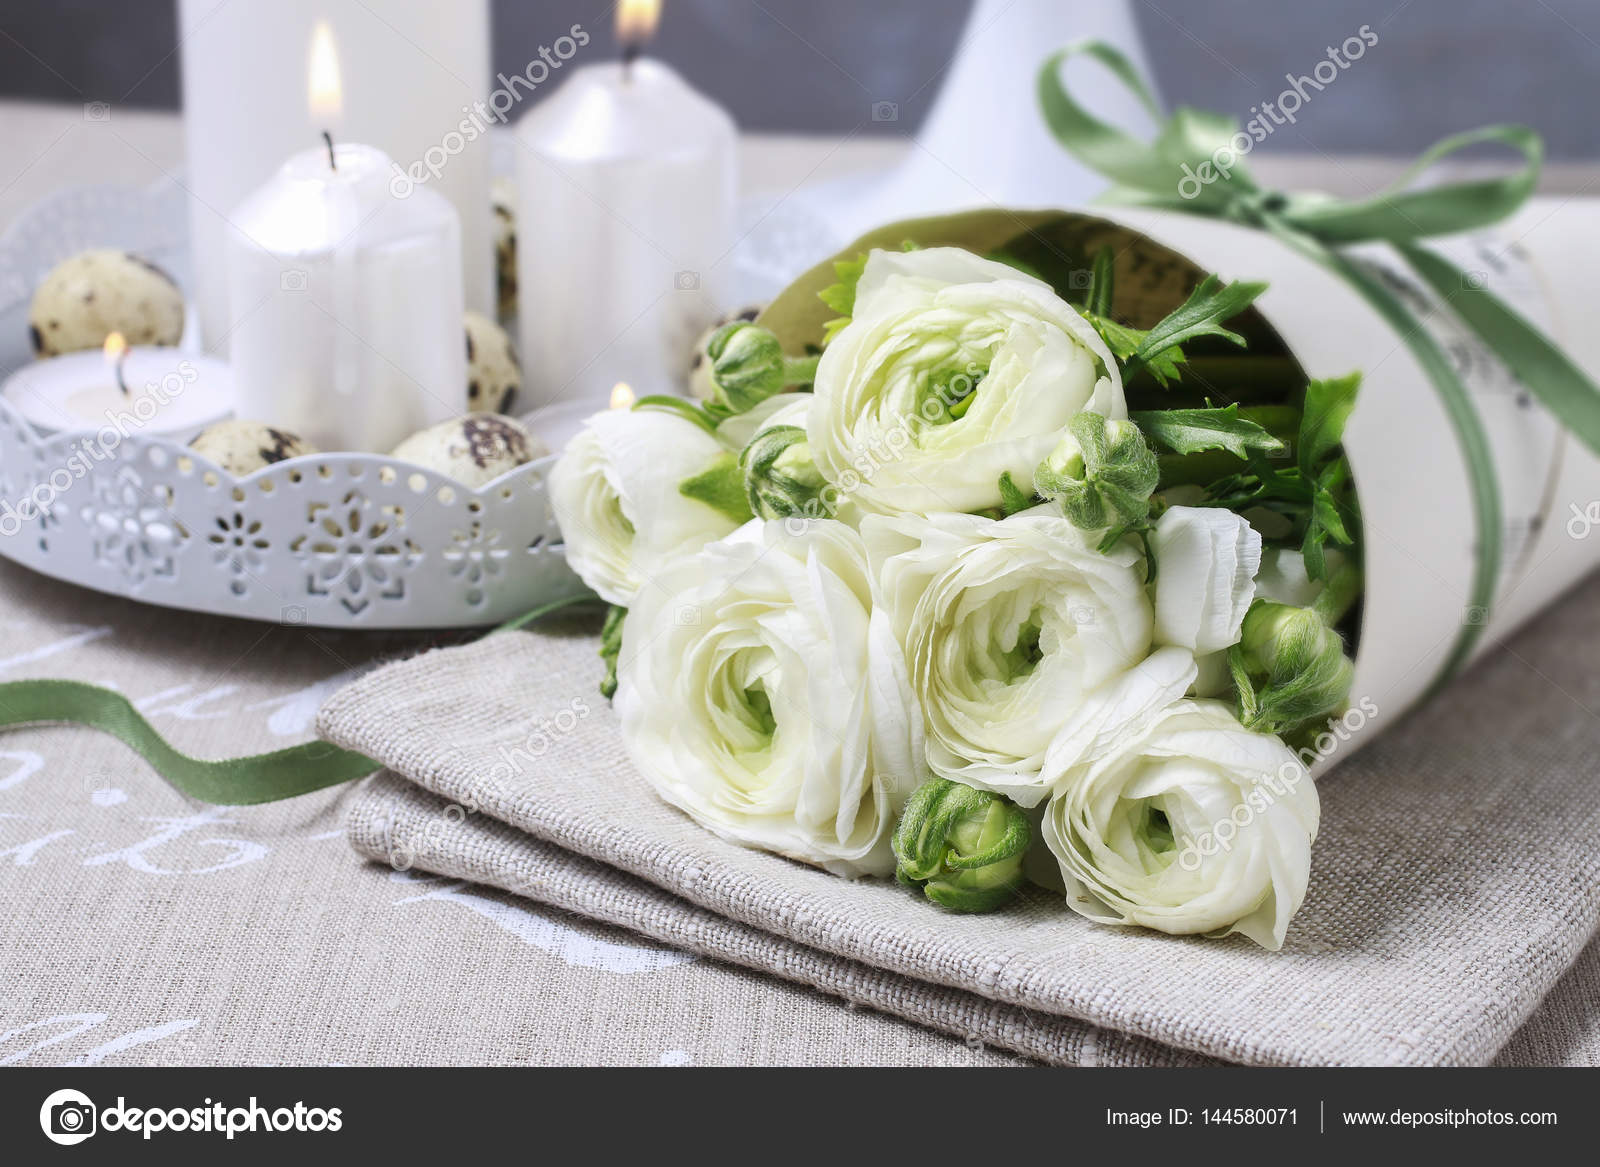 Bouquet of white ranunculus flowers stock photo agneskantaruk bouquet of white ranunculus flowers persian buttercup flowers photo by agneskantaruk mightylinksfo